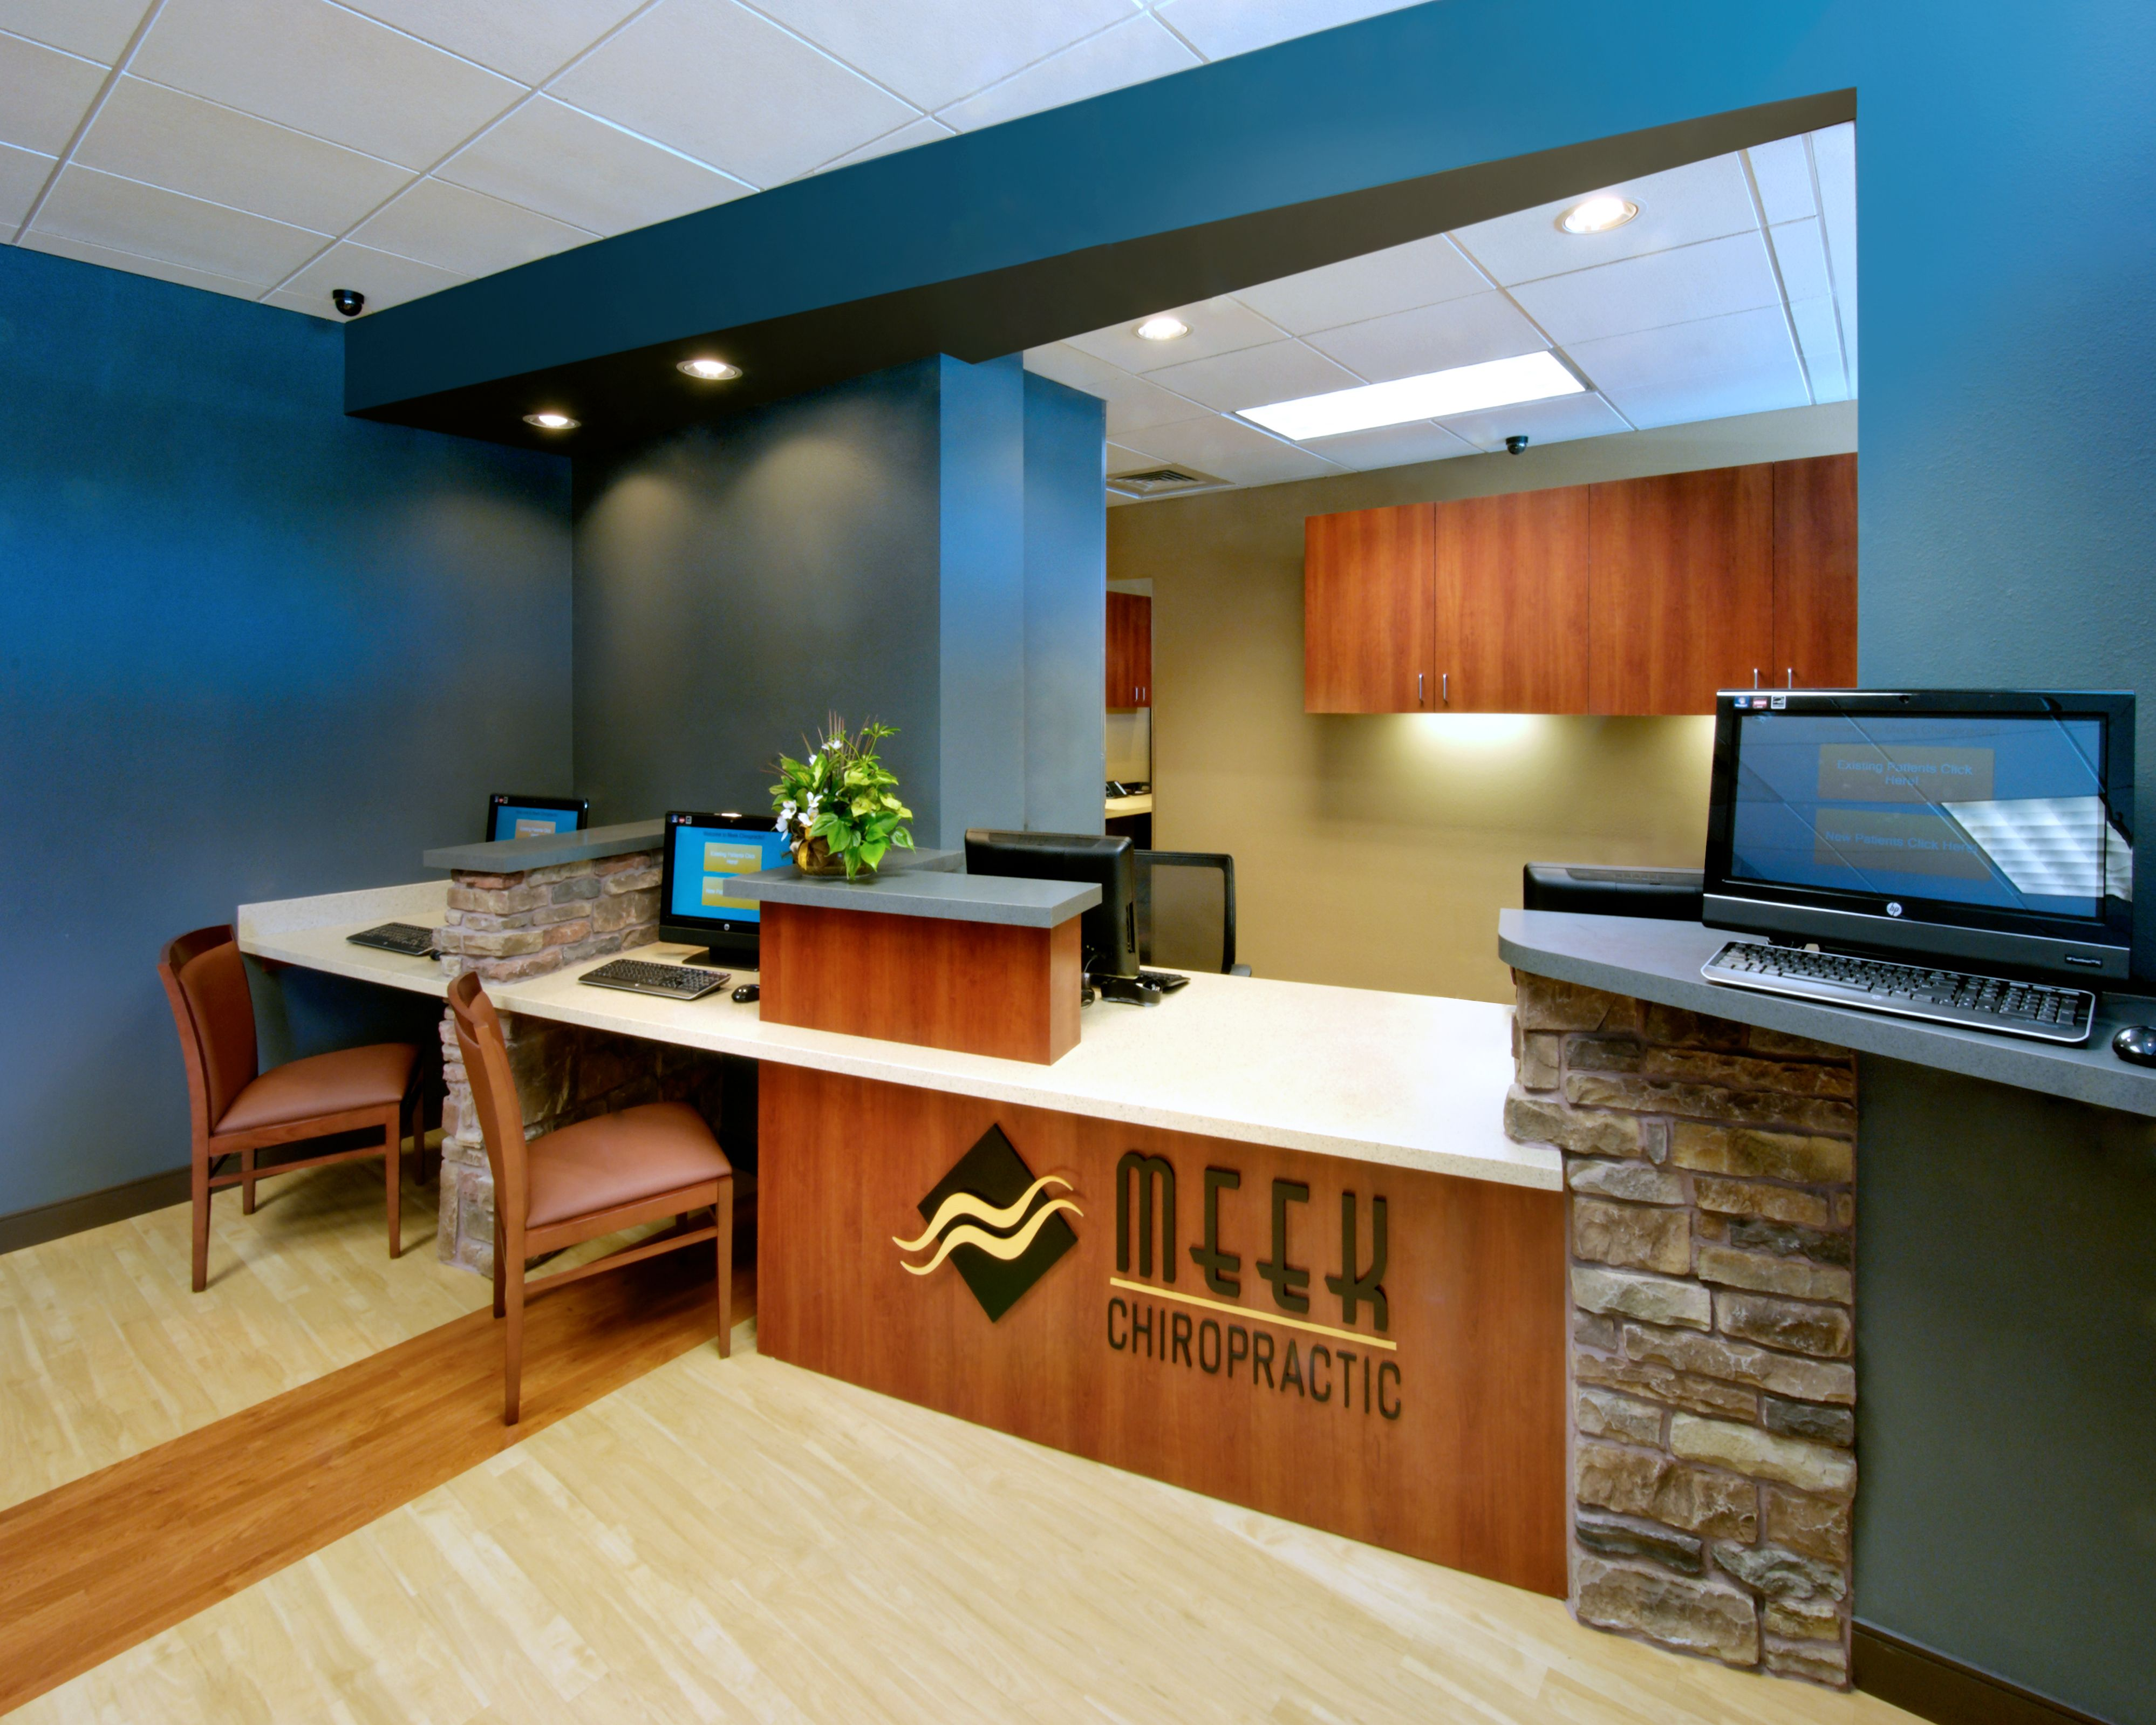 Meek Chiropractic Office Infill Medical office decor